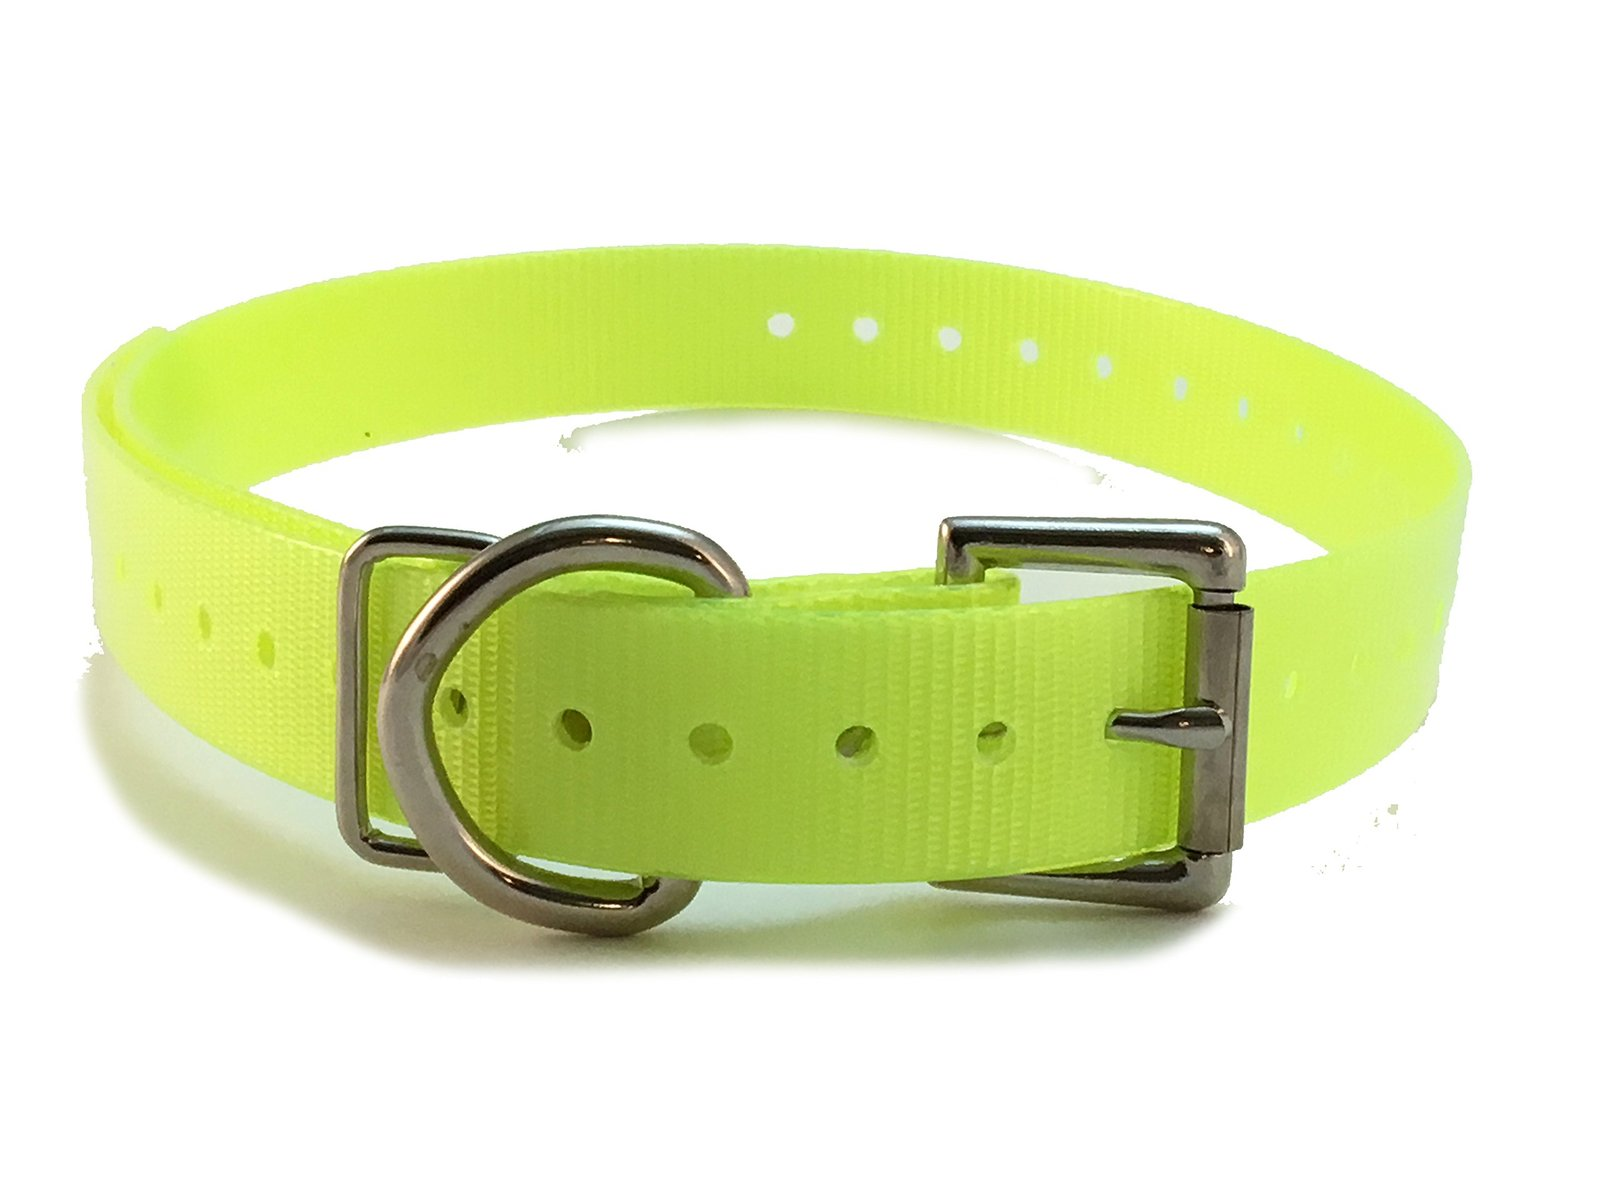 Petsafe 3/4' High Flex Waterproof Roller Buckle Dog Strap, Neon Yellow